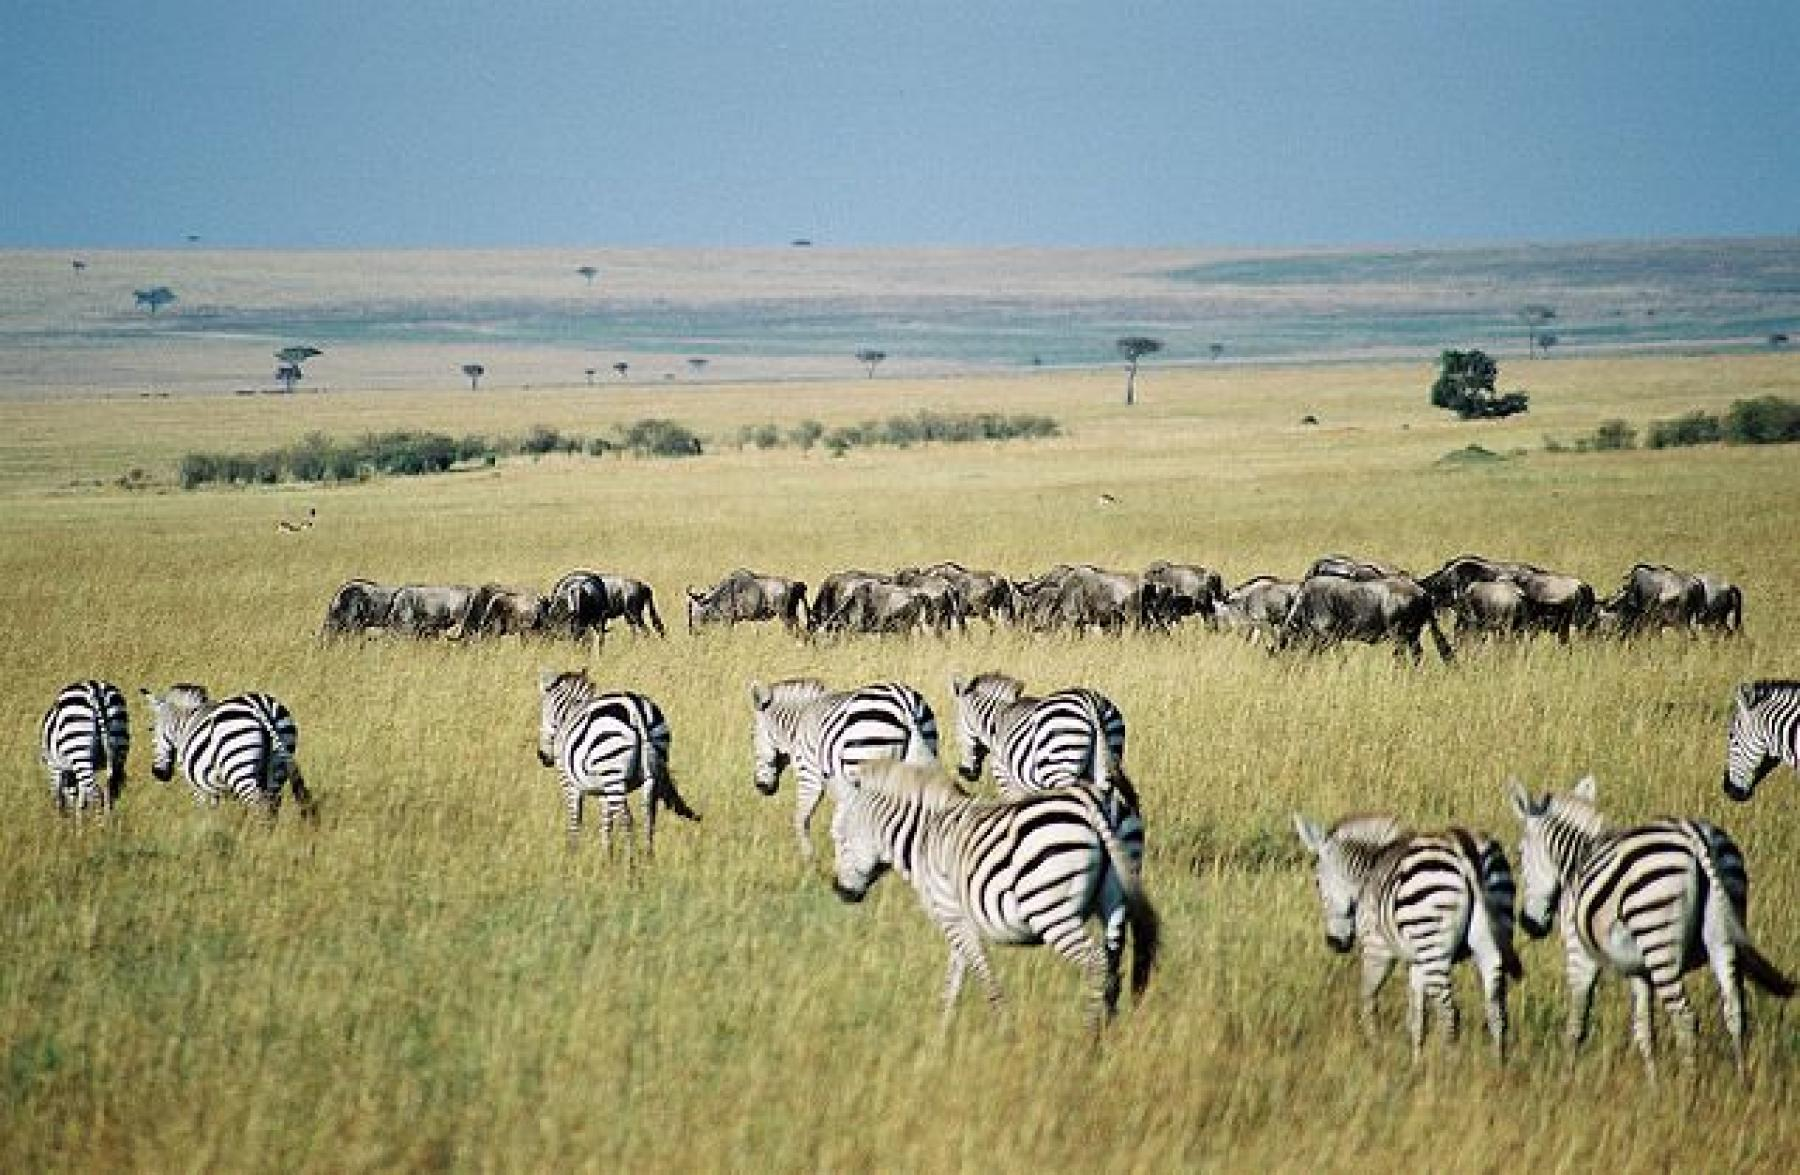 Masai Mara - Experience the greatest wildlife show and migration in Africa starting at Nairobi City County, Nairobi, Kenya